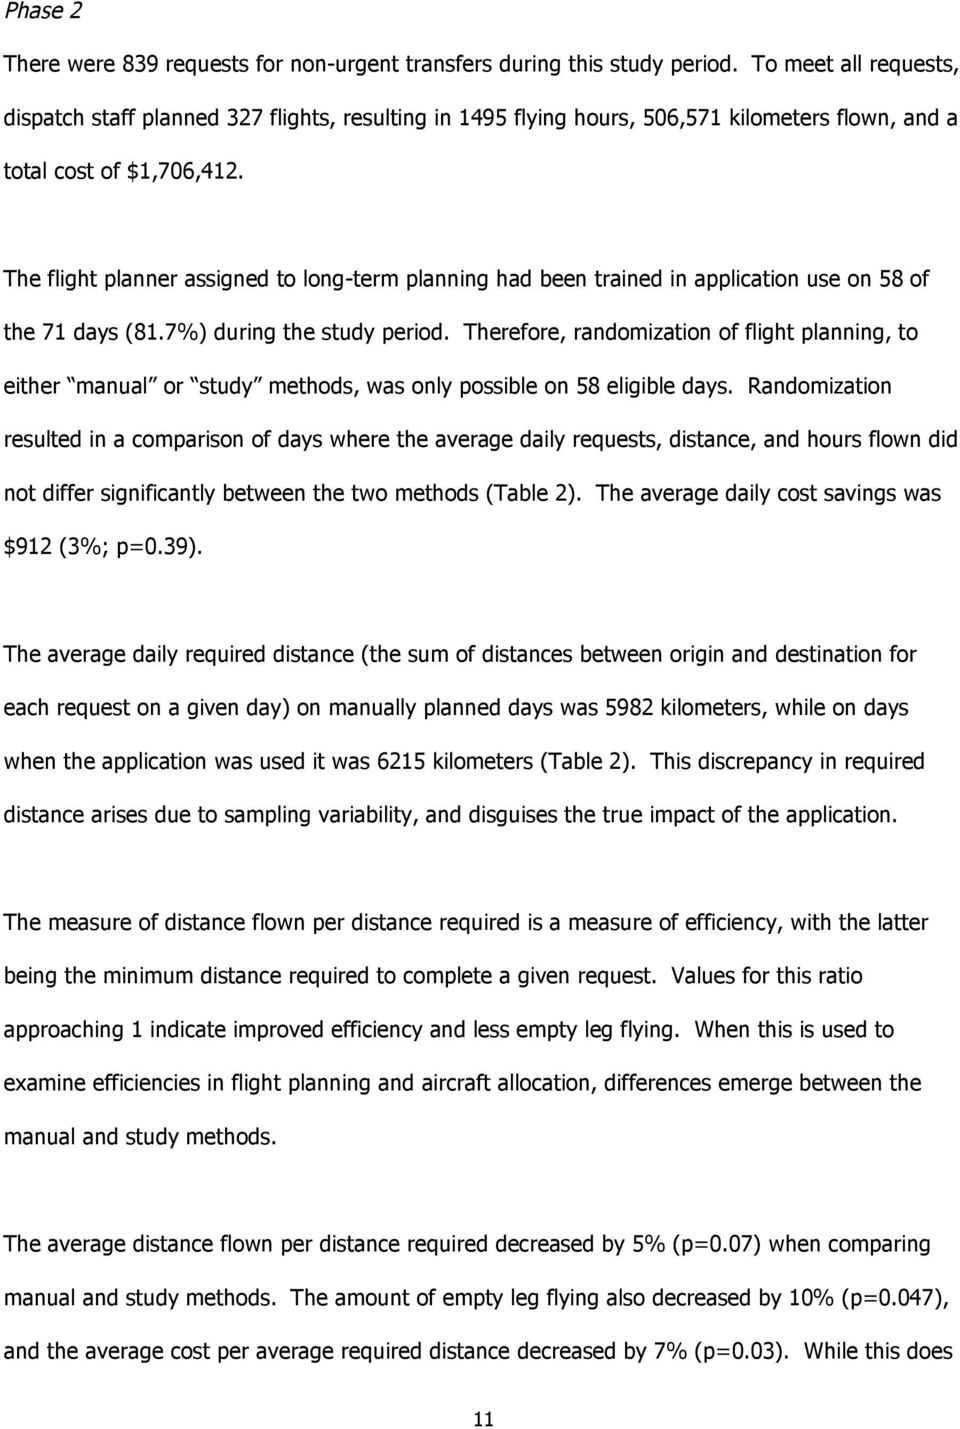 The flight planner assigned to long-term planning had been trained in application use on 58 of the 71 days (81.7%) during the study period.